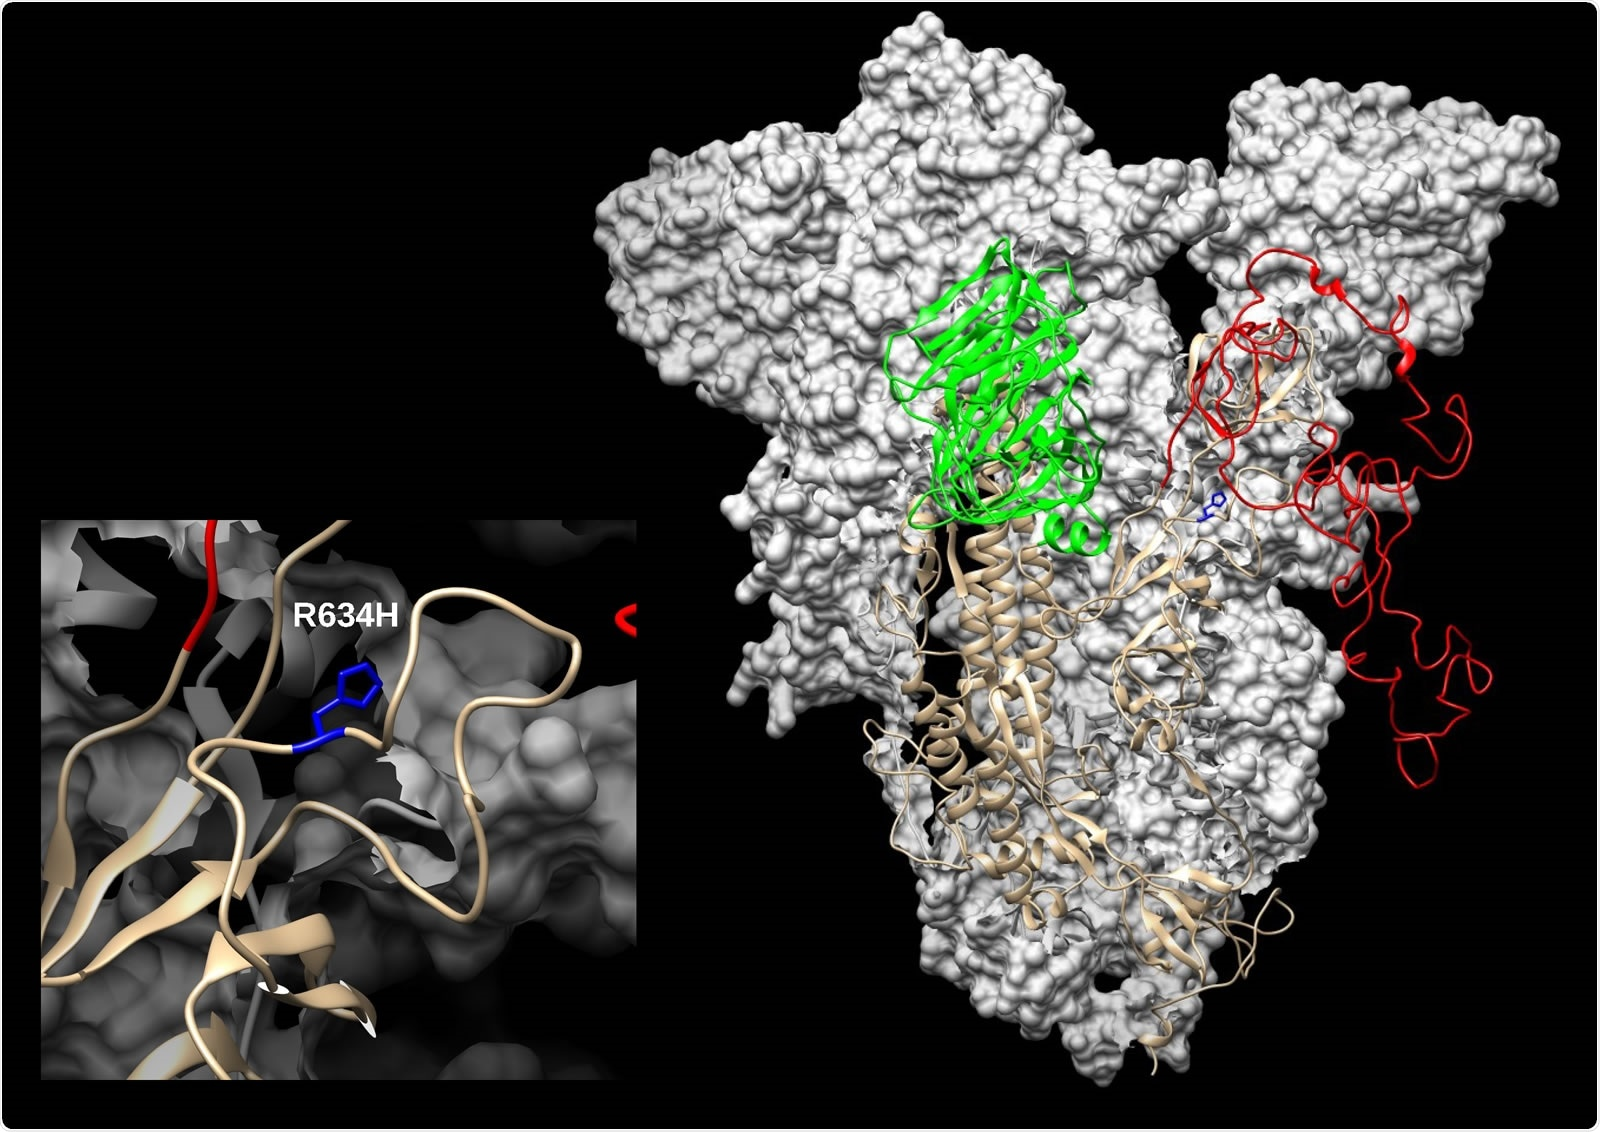 SARS-CoV-2 spike (S) modelled with SWISS-MODEL (Waterhouse et al., 2018) using 6ZGH structure as a template, drawn and colored in UCSF Chimera (Pettersen et al., 2004). N-terminal domain (NTD) is colored green and Receptor-binding domain/Cterminal domain (RBD/CTD) is red. The enlarged inset shows the location of R634H mutation (blue).